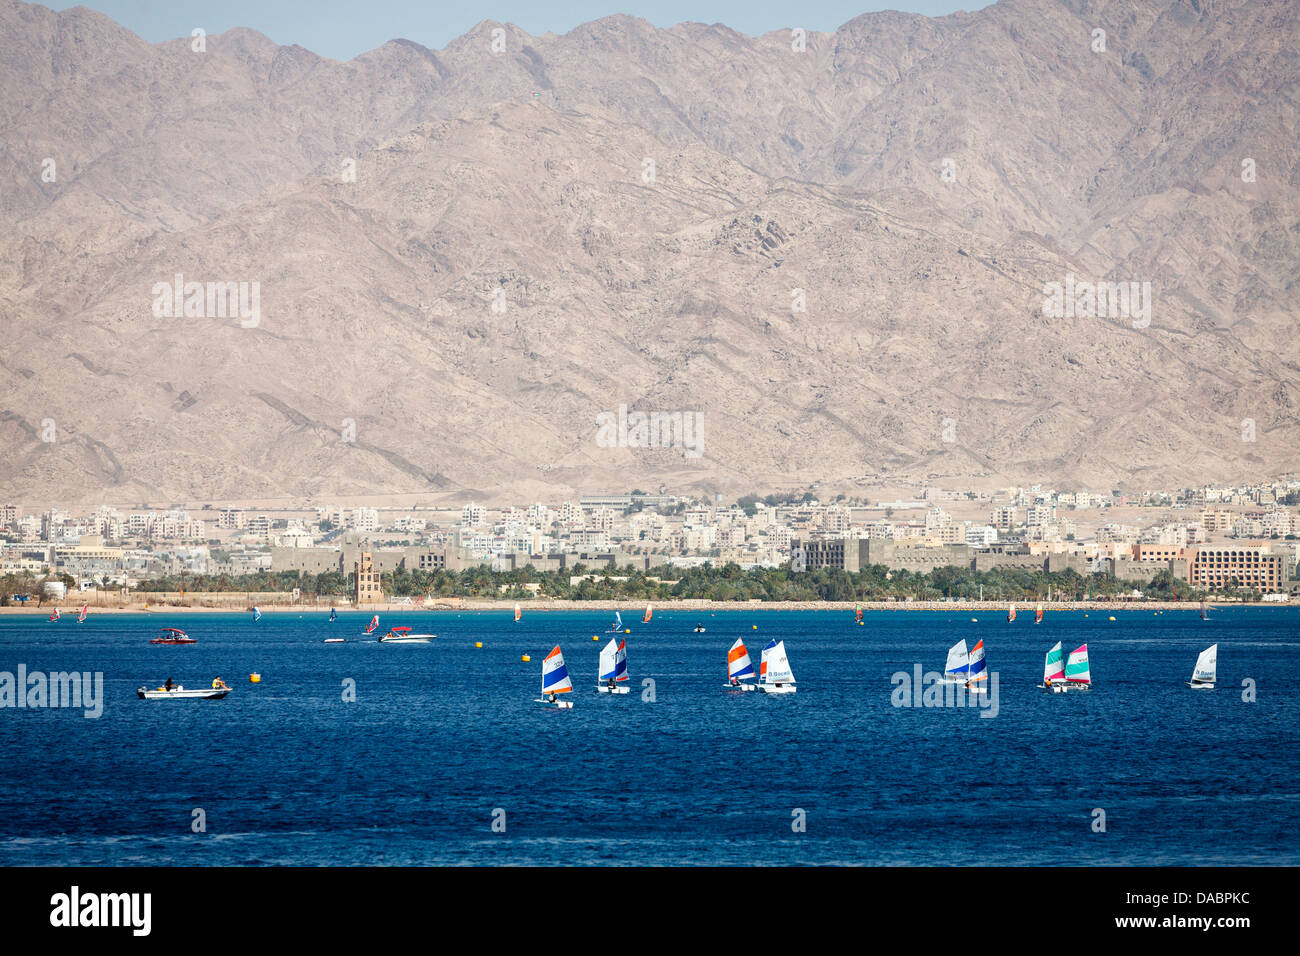 Wind surfing, Eilat, Israel, Middle East - Stock Image